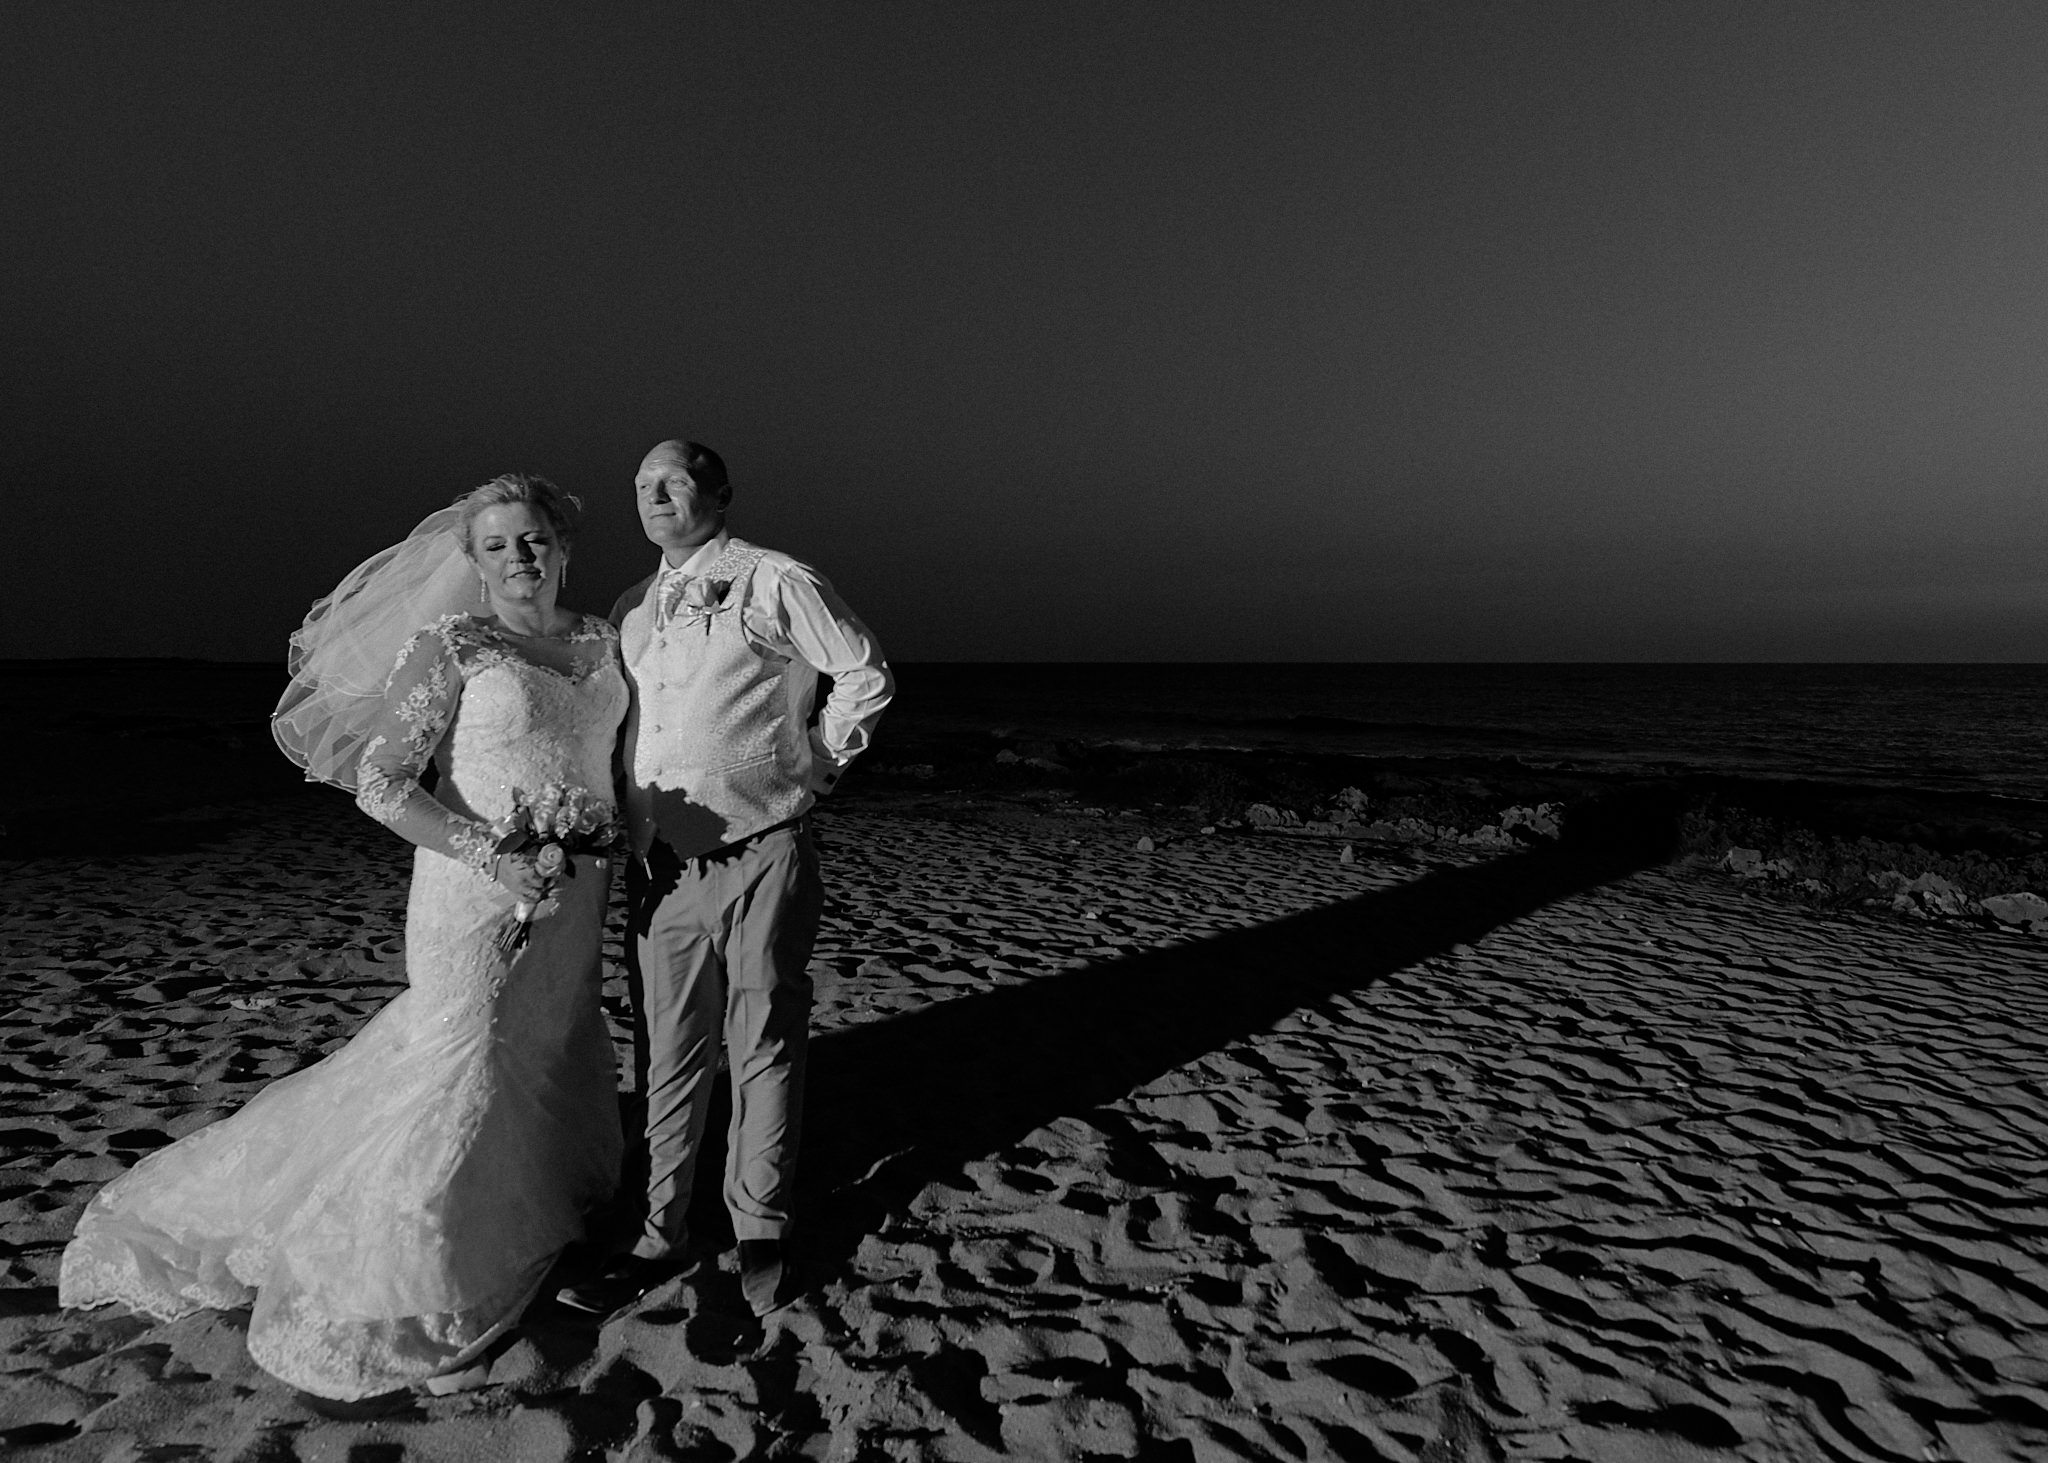 Monochrome, Black and White, B&W, Wedding photography of Kara and Ian taken at The Sentido Cypria Bay, in Pafos, Cyprus by Cyprus Wedding photographer - Richard King.  September 2018.  The wedding included a trip on a wedding bus.